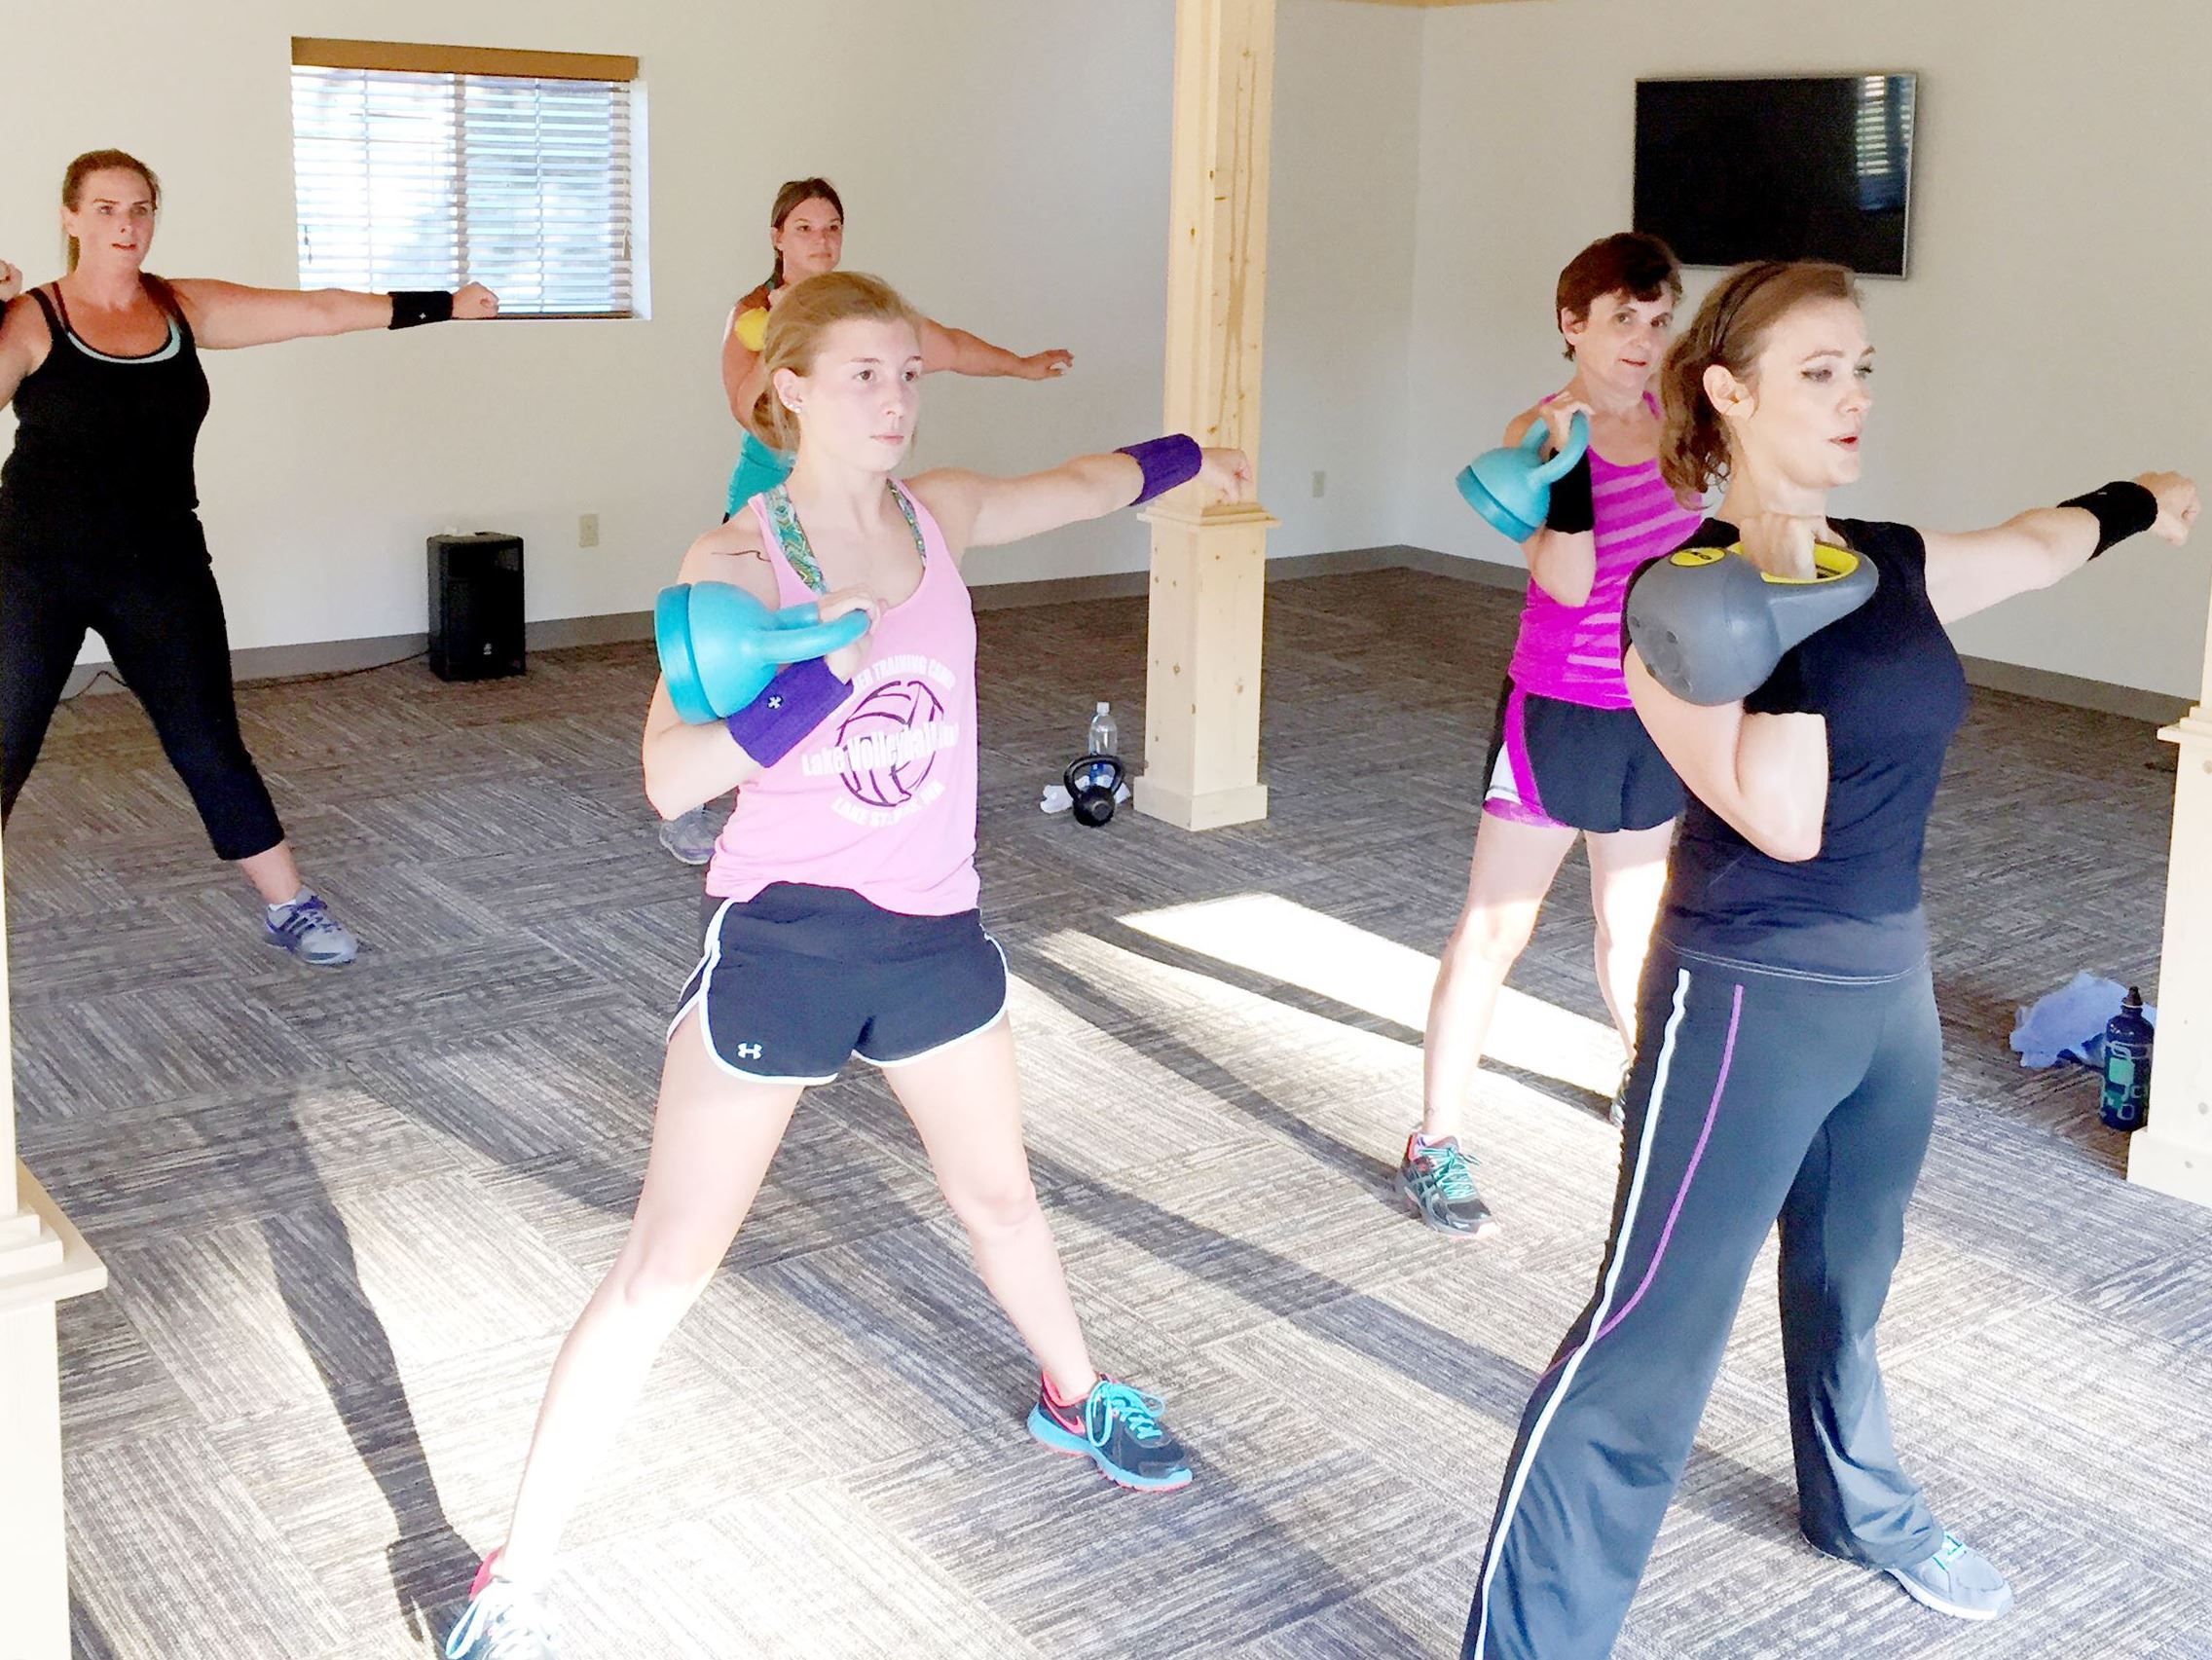 Kettlebell group photo